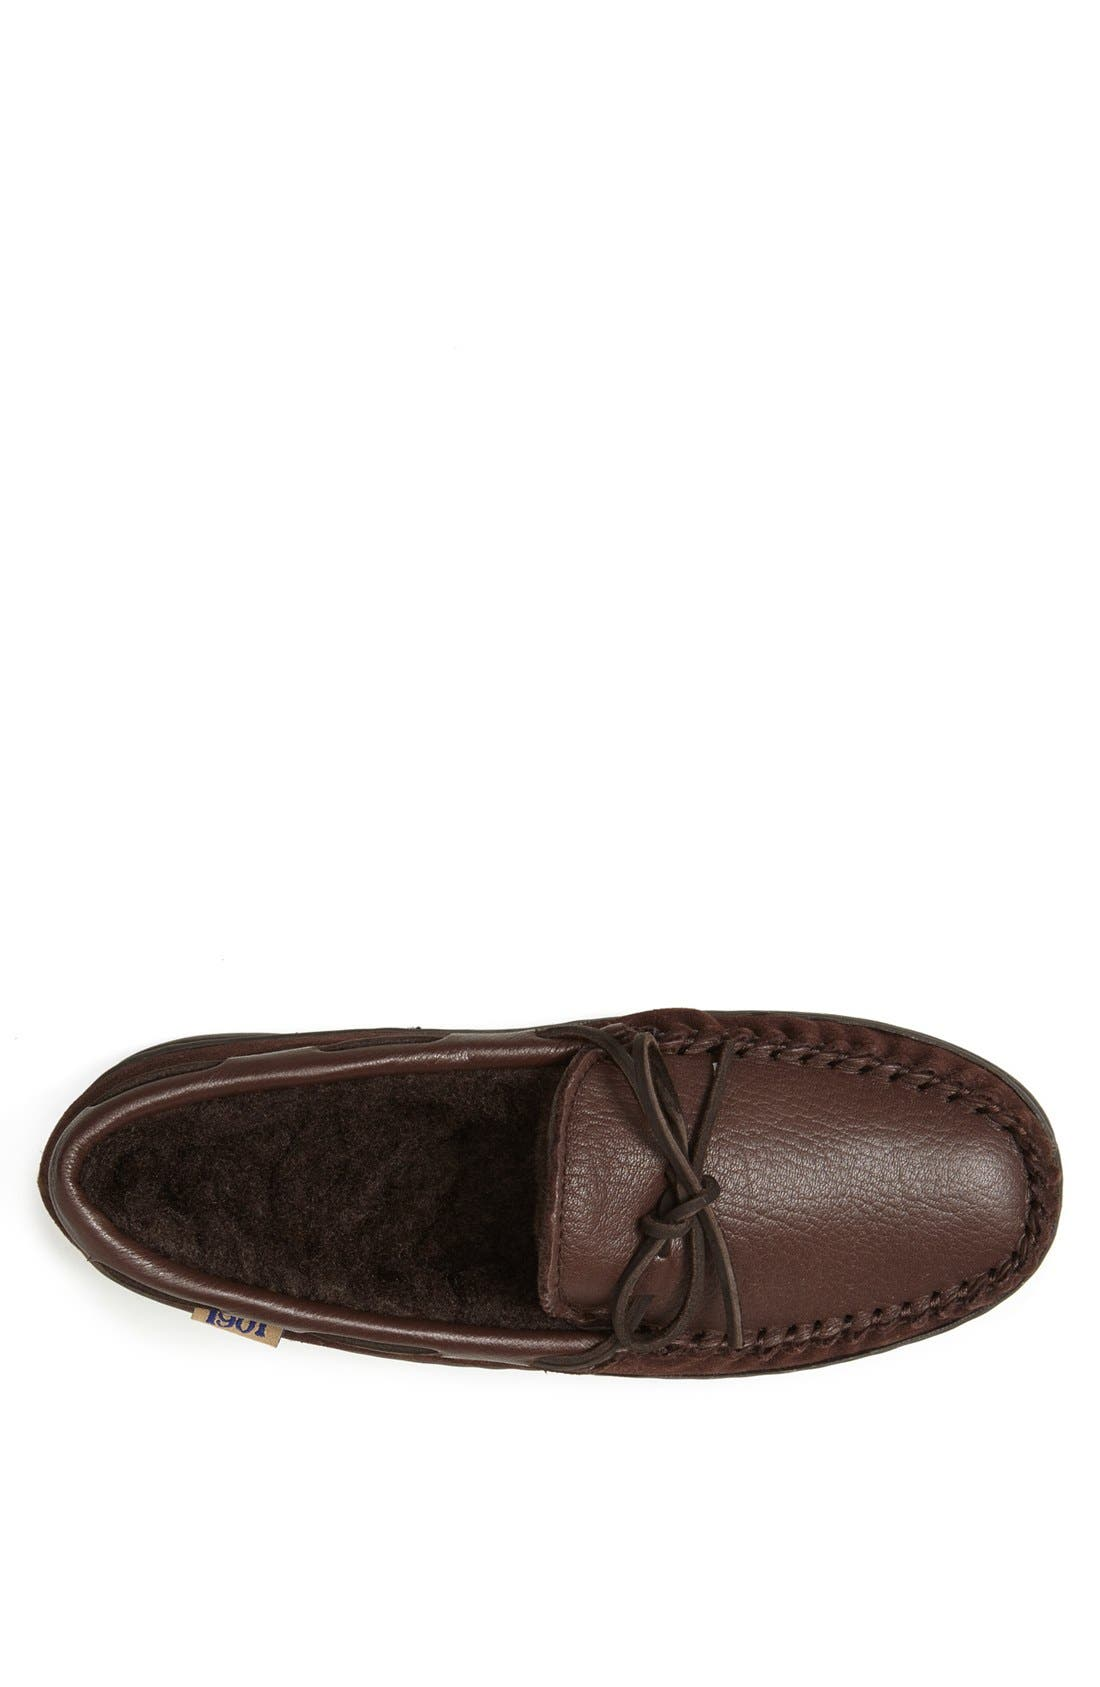 Alternate Image 3  - 1901 'Cameron' Slipper (Men)